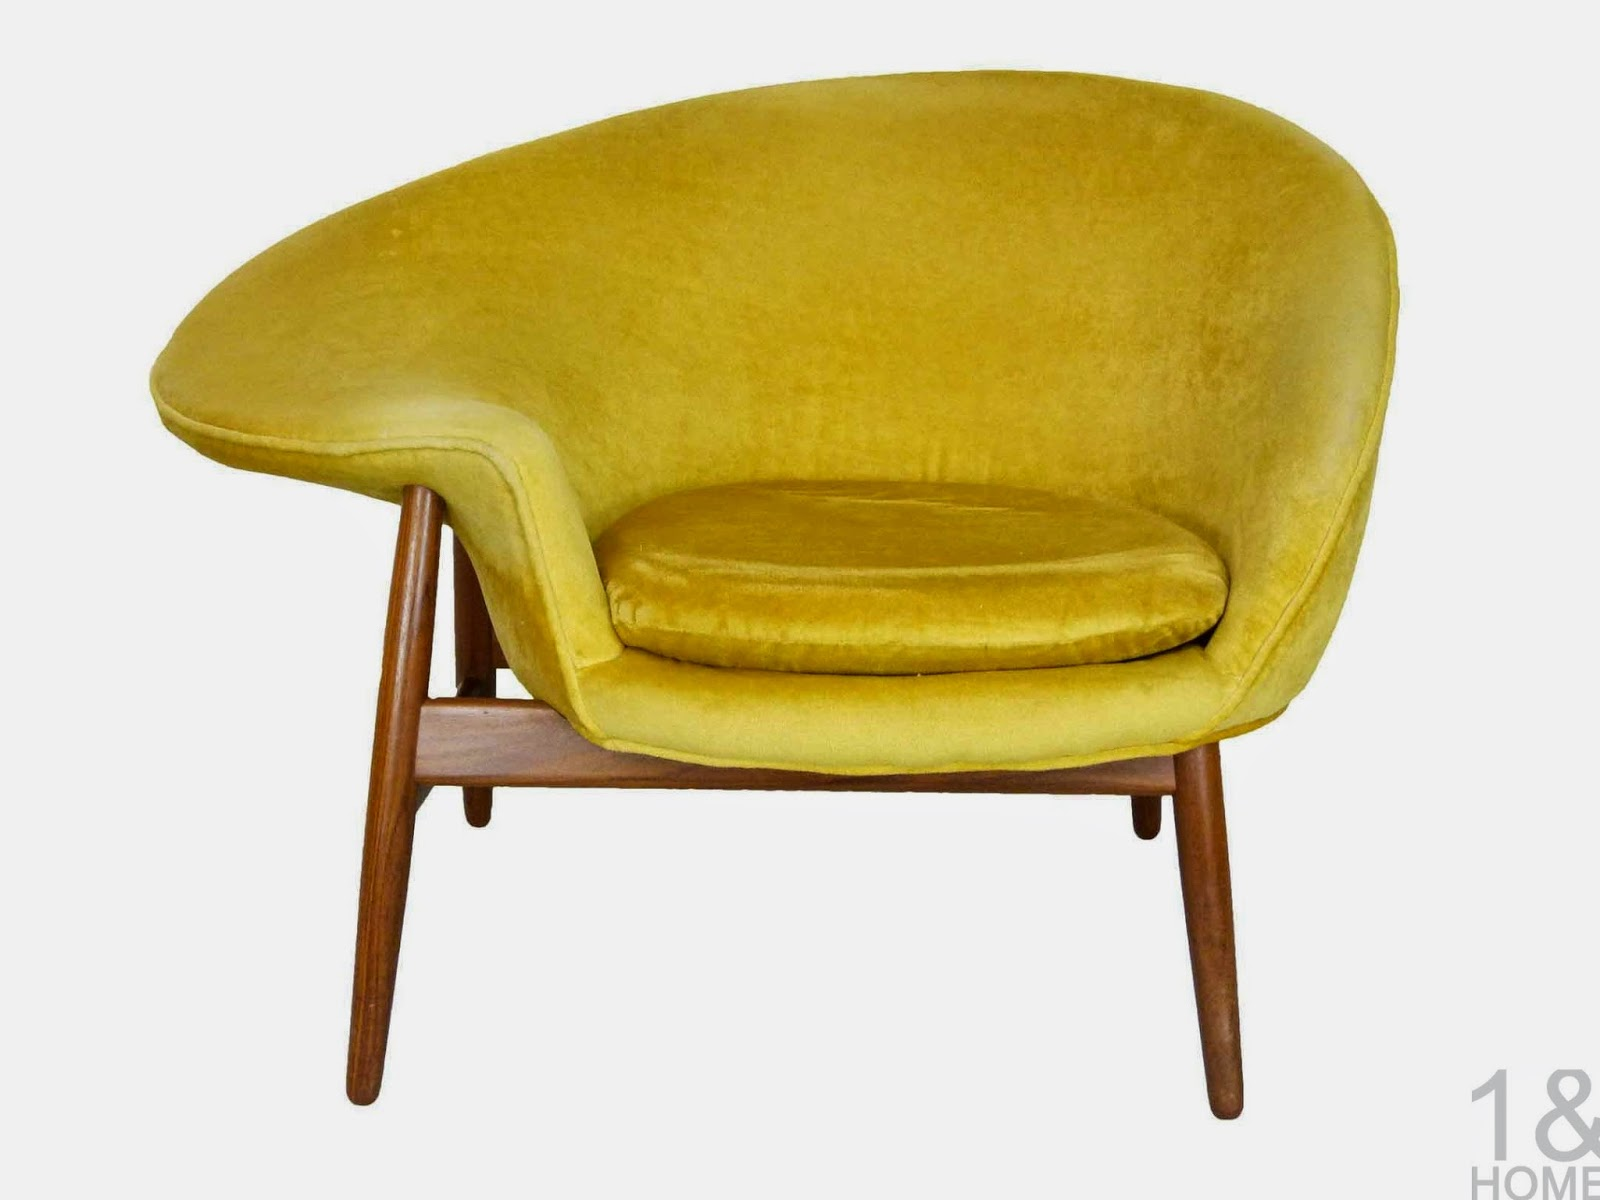 Fried Egg Chair Modern Dining Table And Chairs Mid Century Danish Vintage Furniture Shop Used Yellow Hans Olsen Bramin Denmark